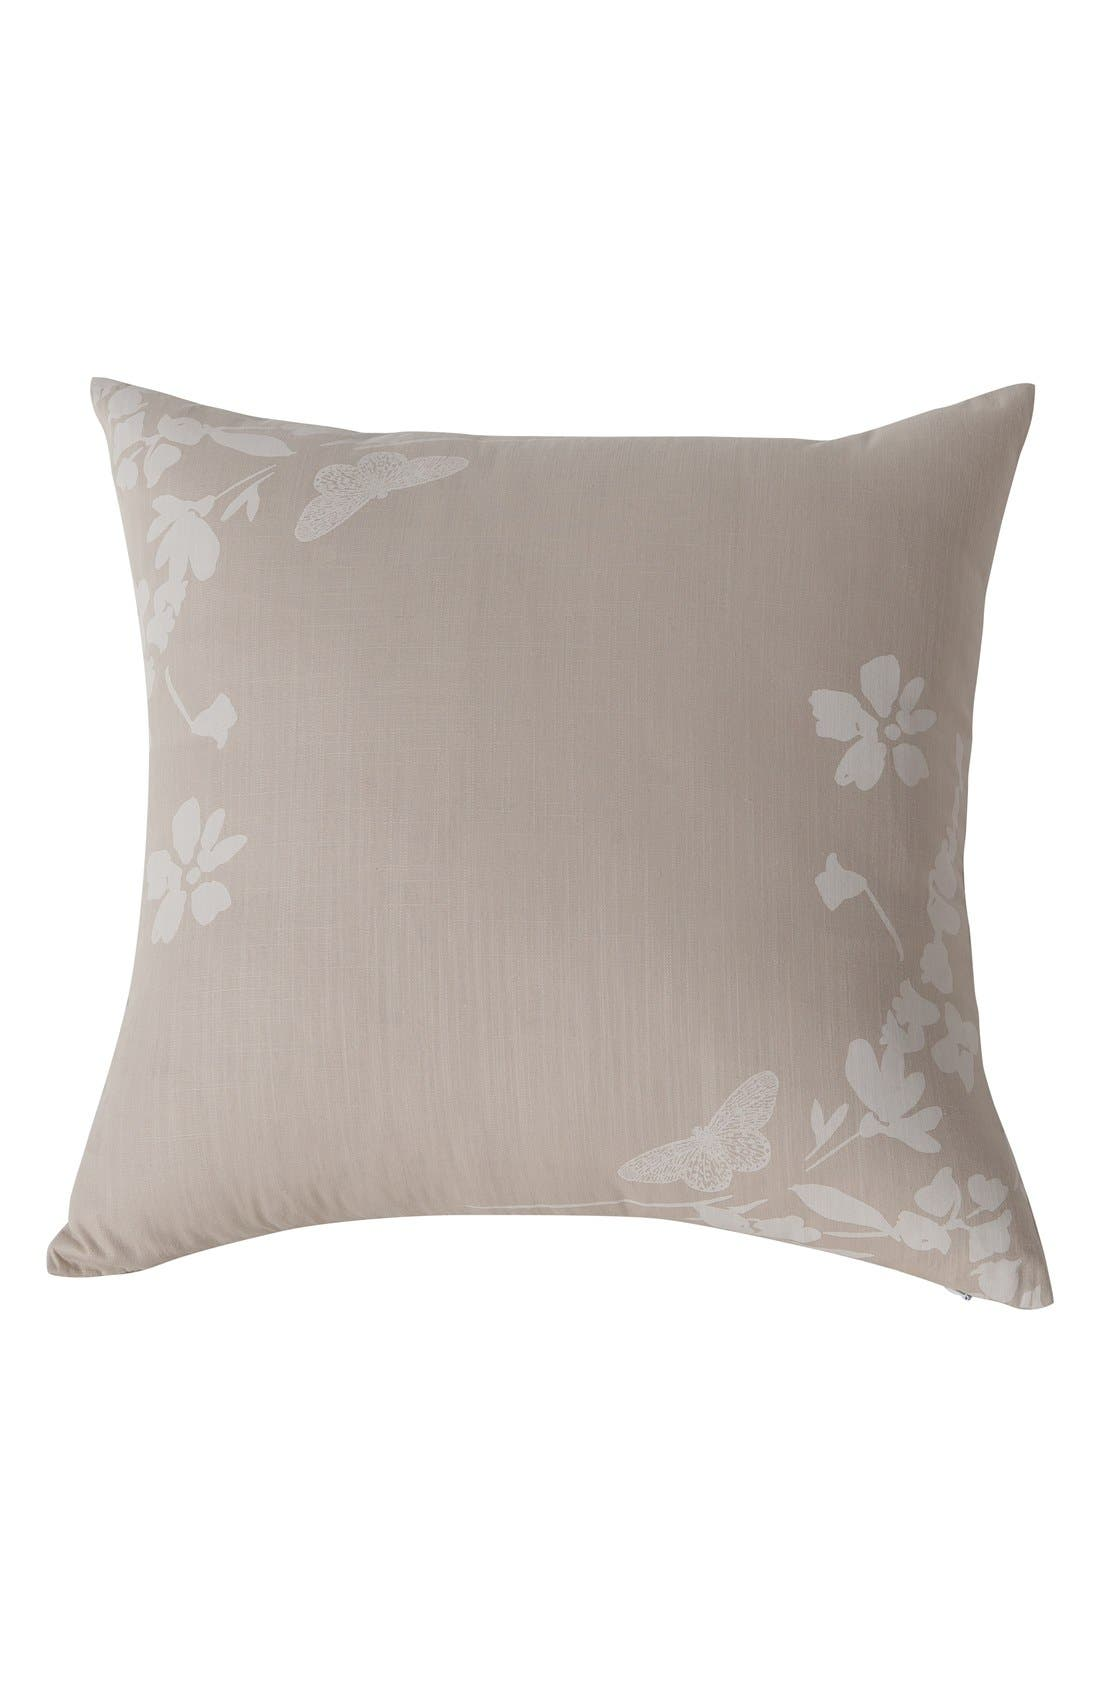 Alternate Image 1 Selected - kensie 'Laramie' Accent Pillow